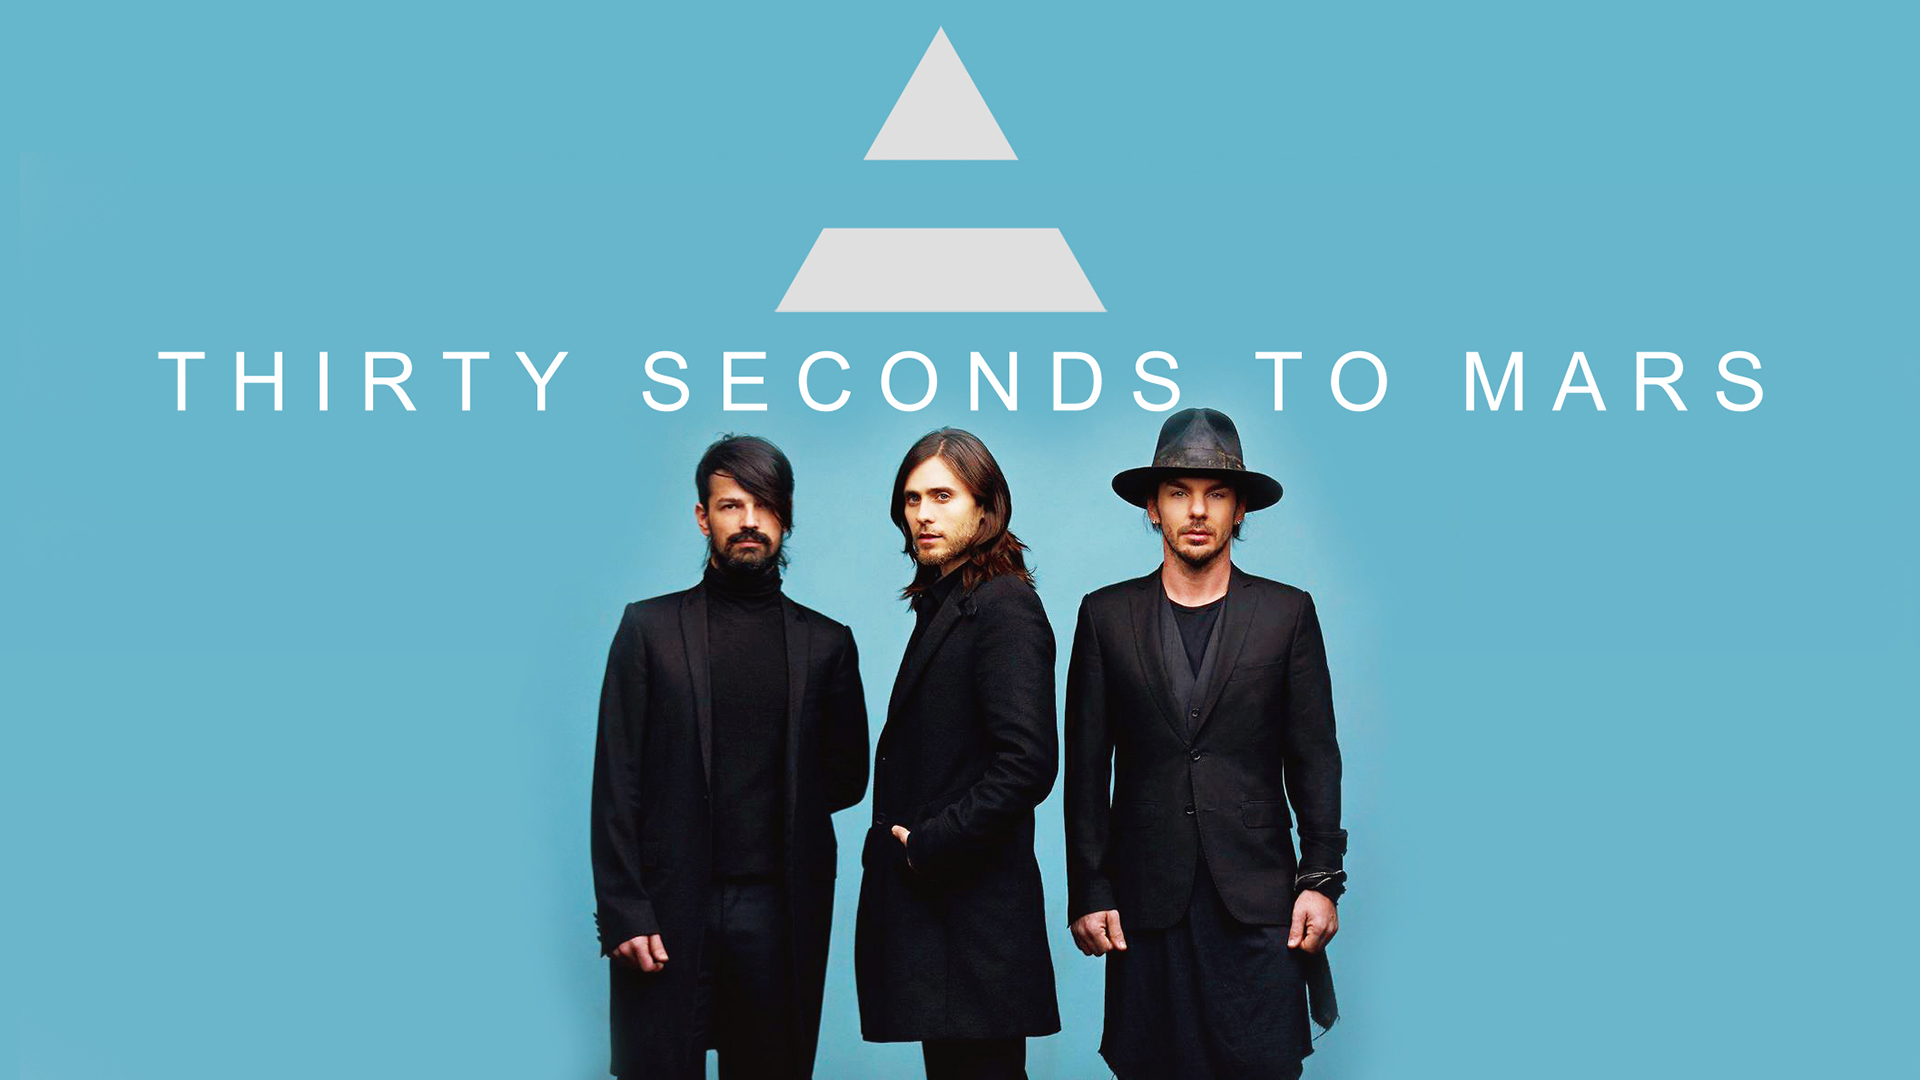 30 Seconds to Mars Wallpapers High Quality | Download Free